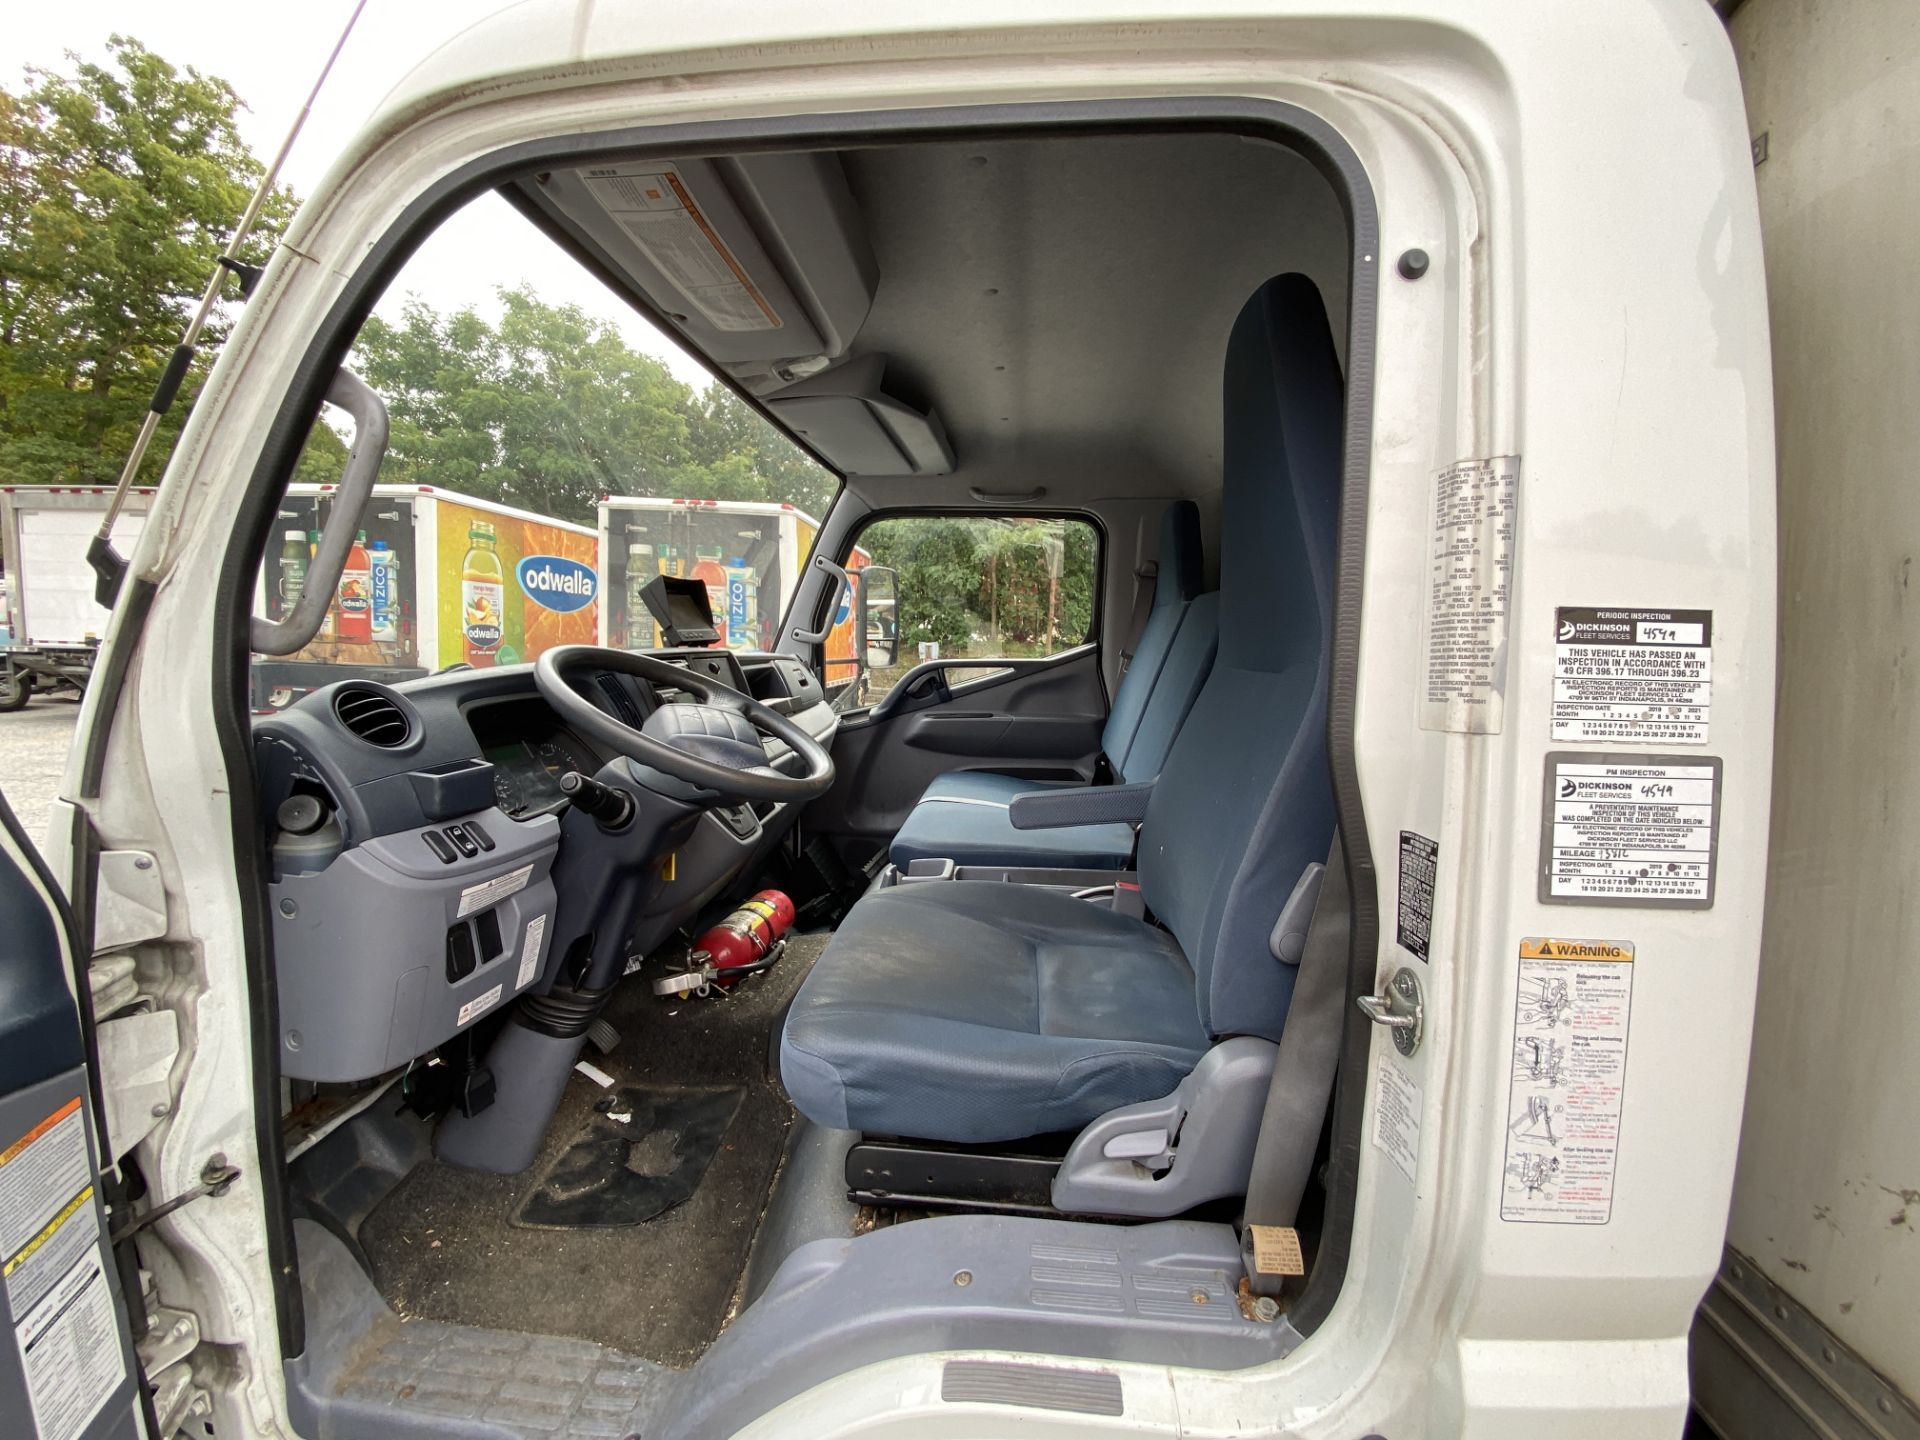 2014 Fuso refrigerated truck - Image 7 of 9